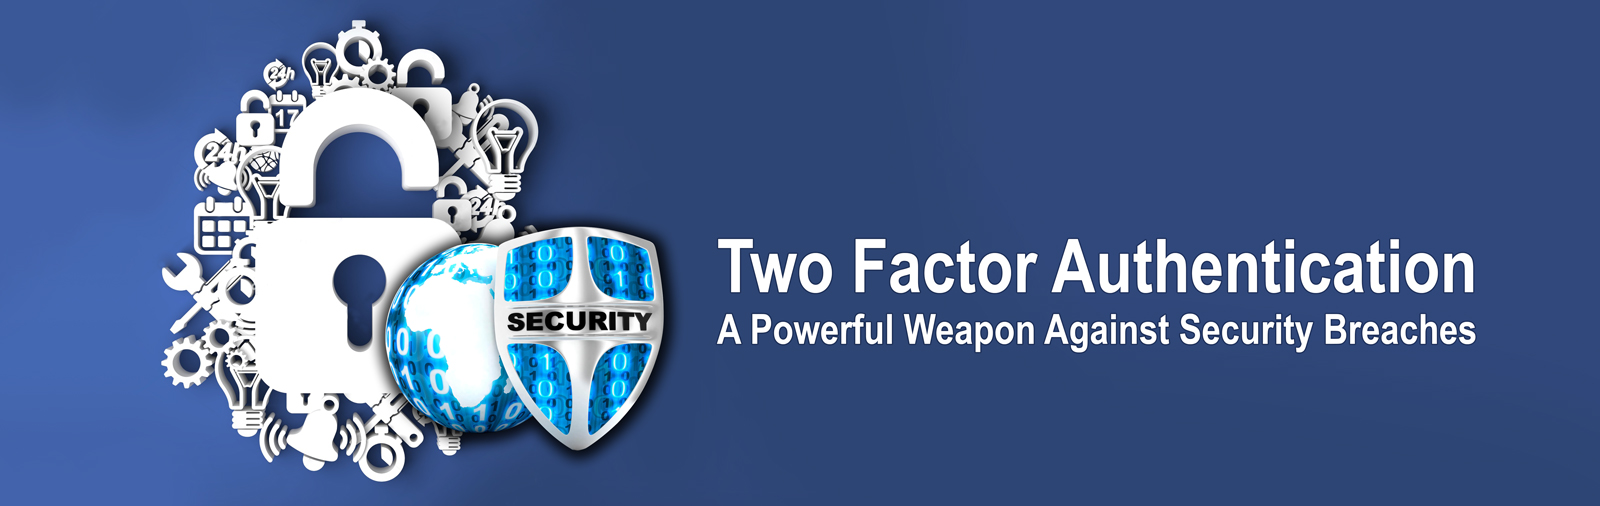 Two Factor Authentication: A Powerful Weapon Against Security Breaches